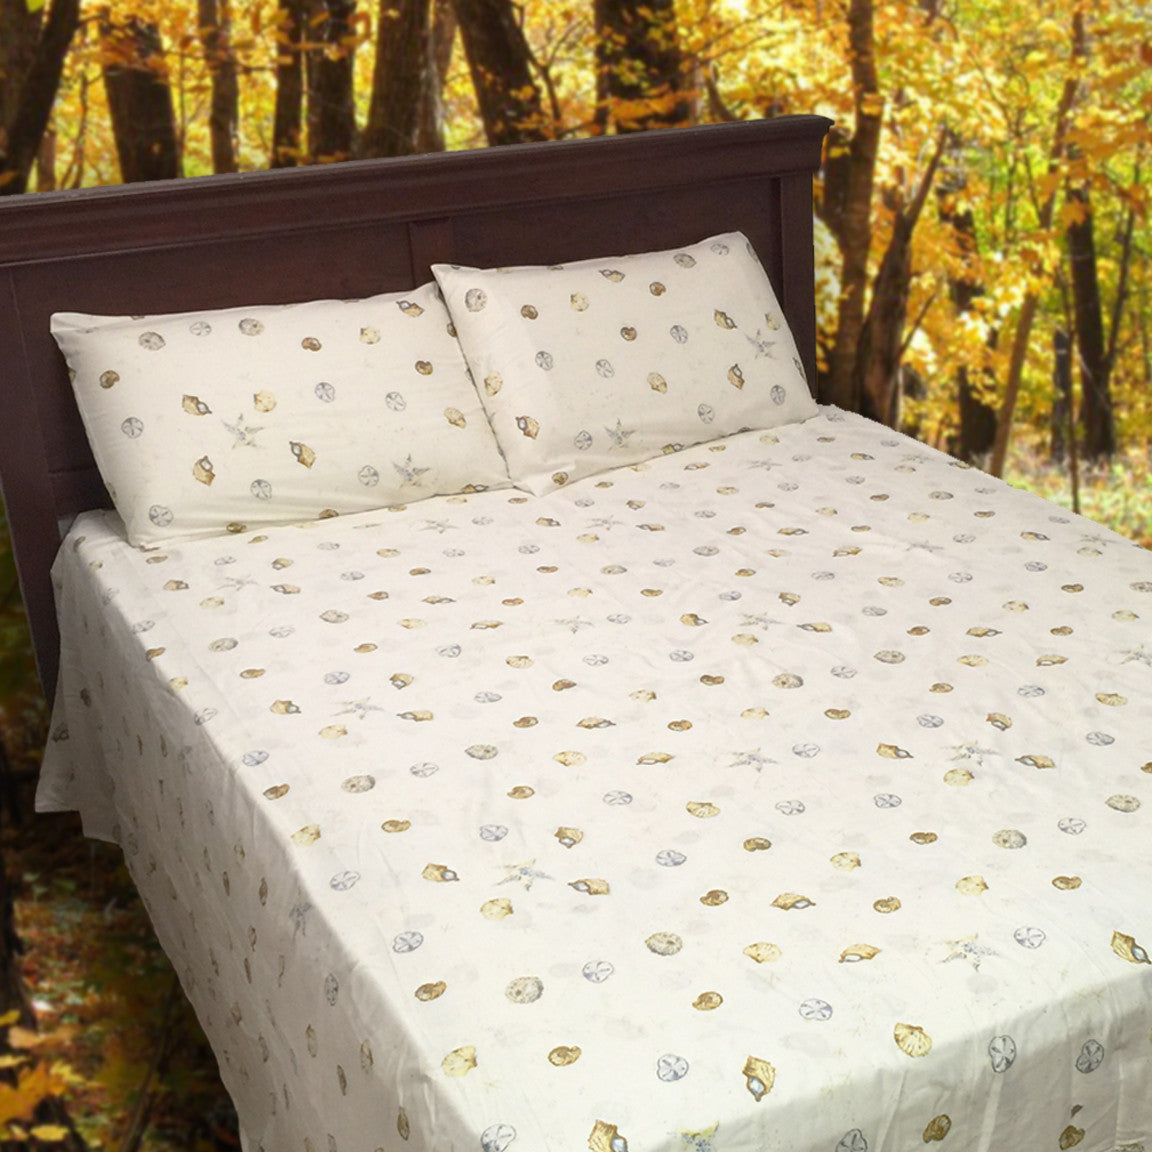 Image result for Organic Bed Sheets